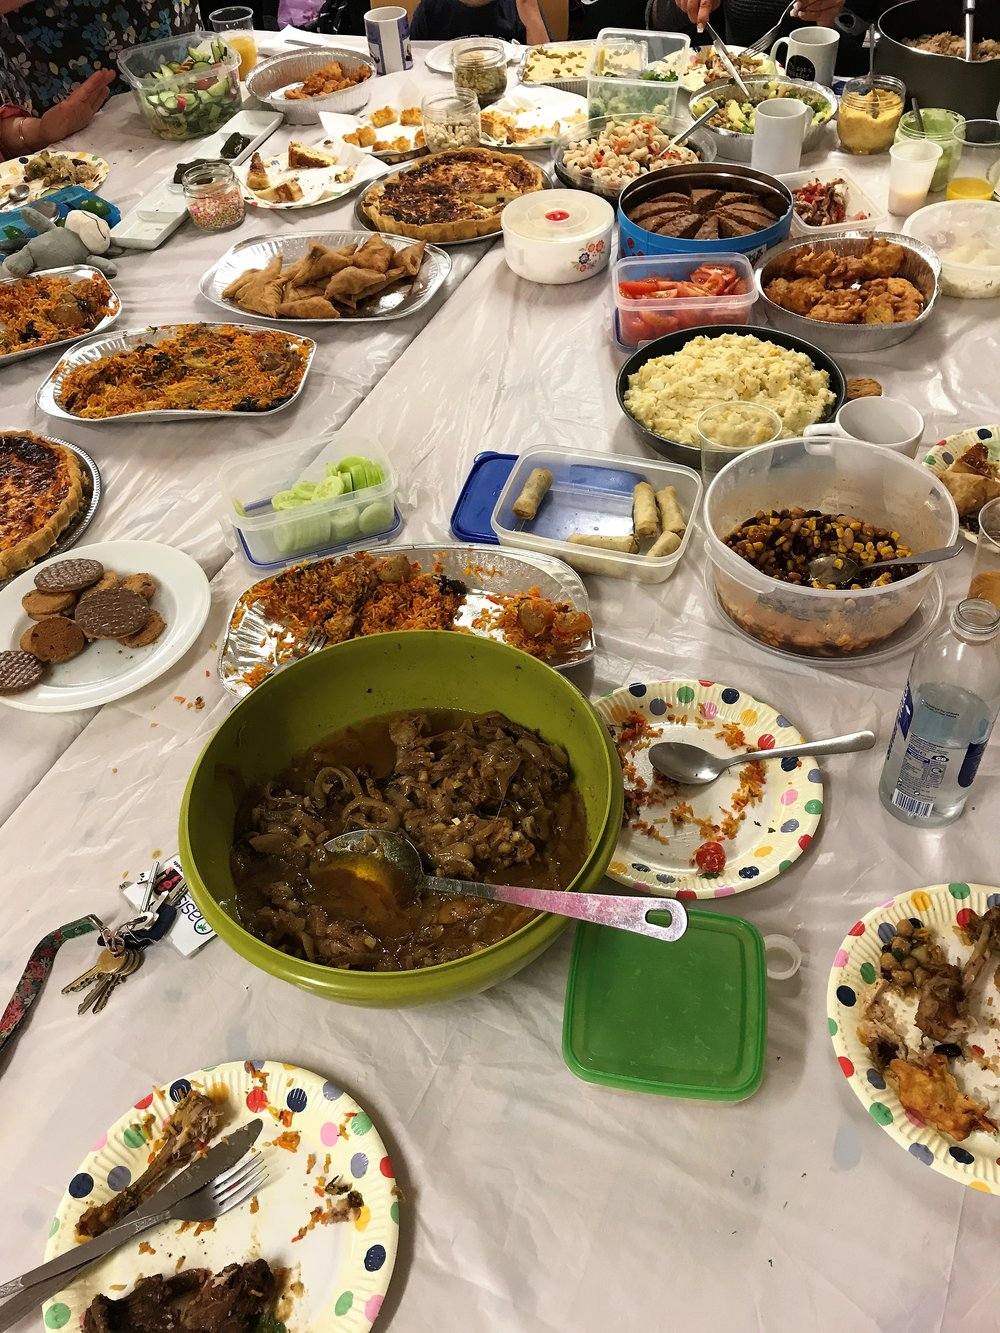 Eid 2017 - Our Support Group celebrates in style